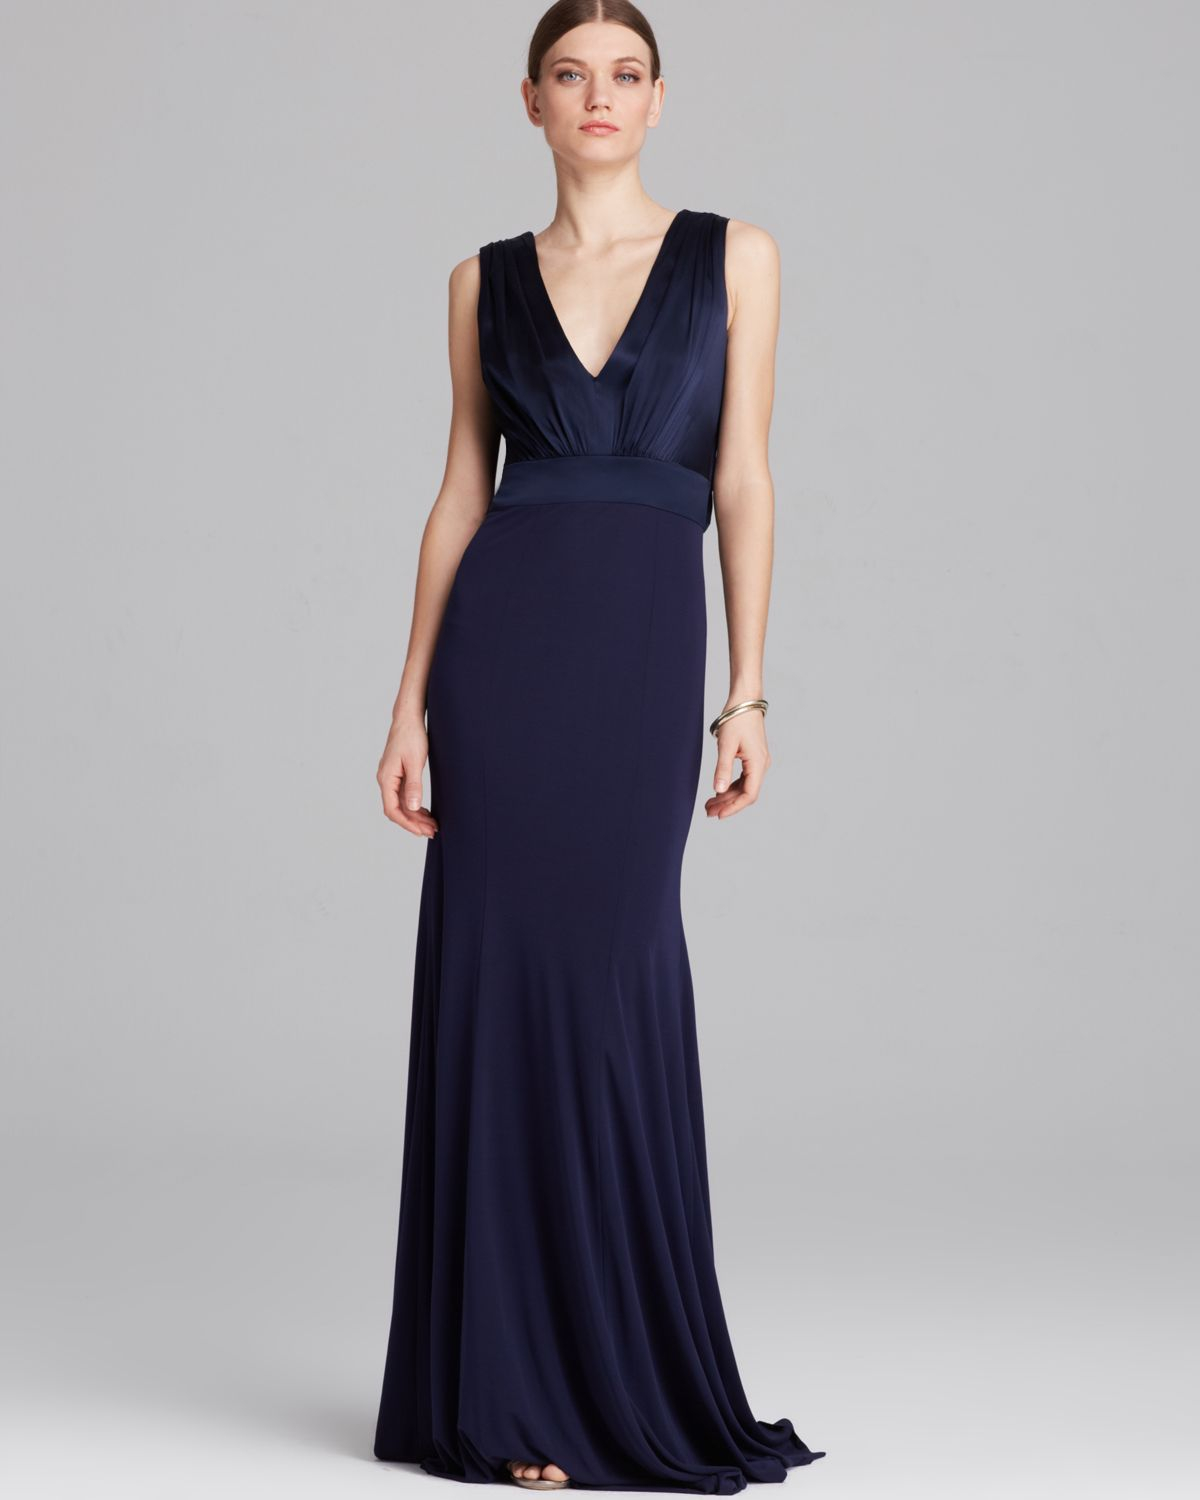 Lyst - Vera Wang Gown Sleeveless Deep V Shawl Back Jersey in Blue